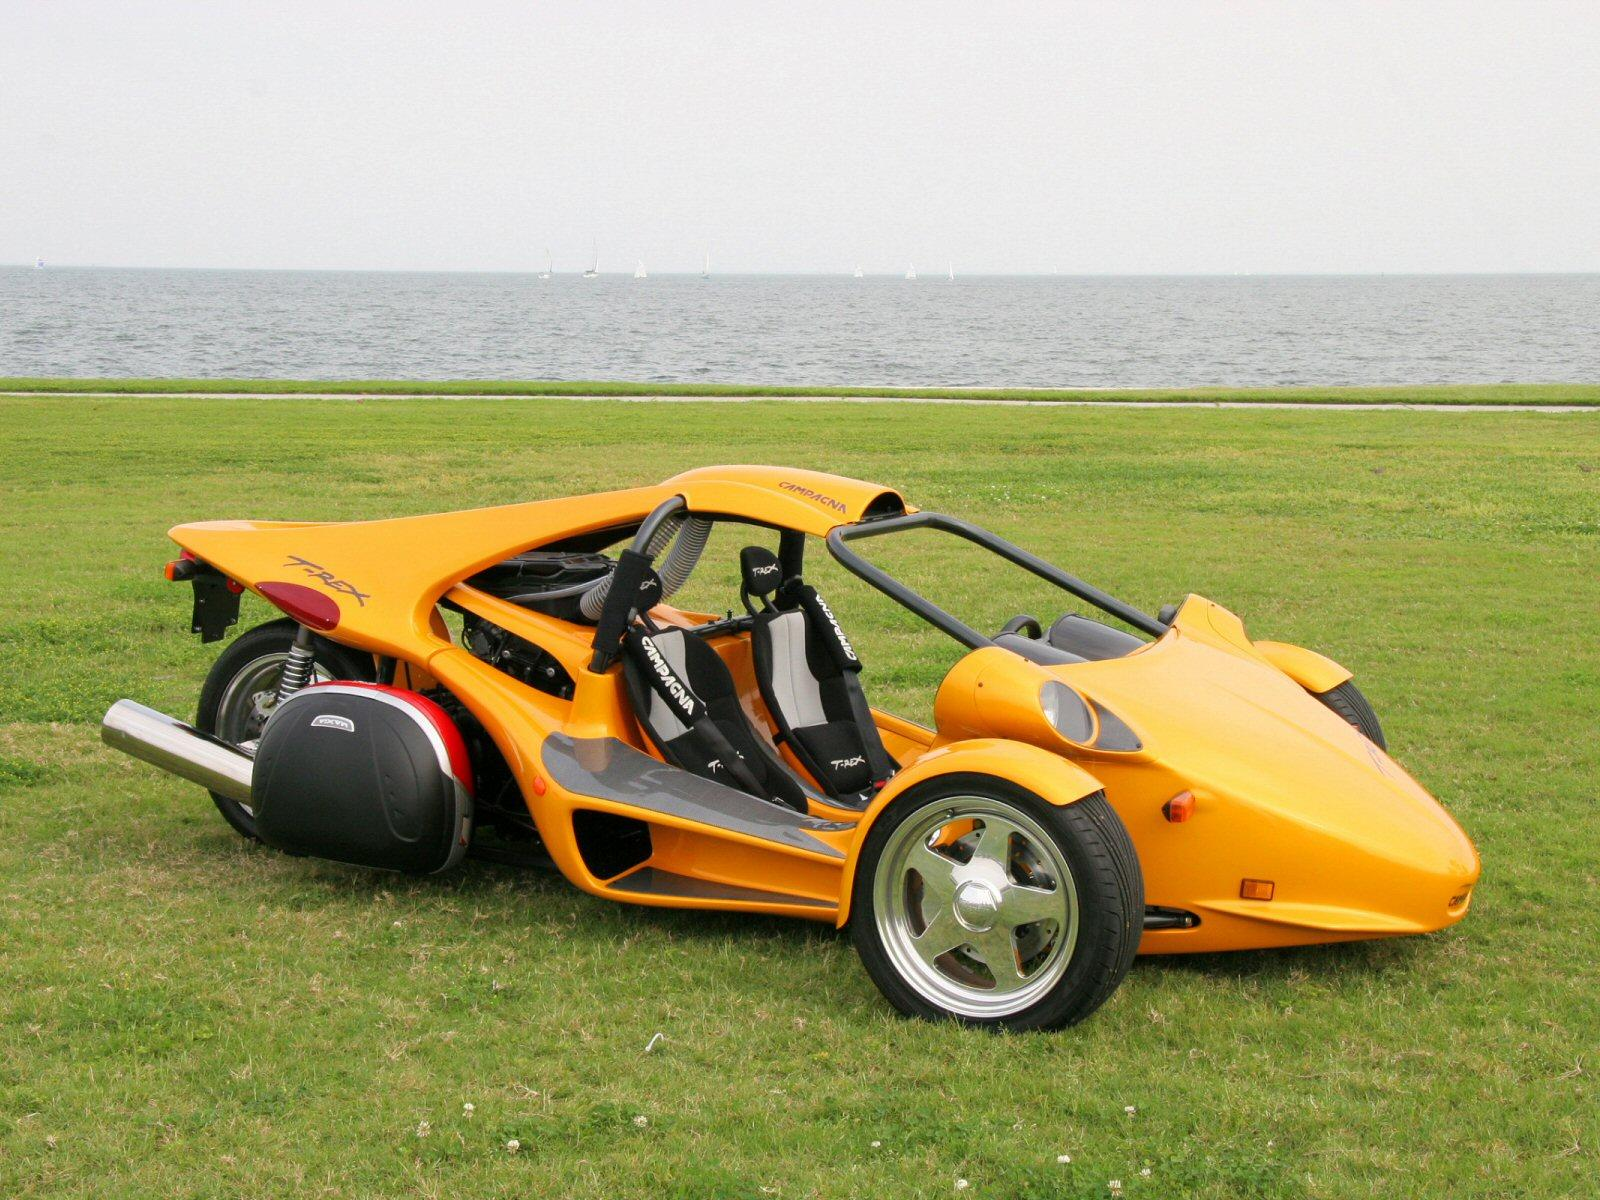 campagna t rex photos photogallery with 15 pics. Black Bedroom Furniture Sets. Home Design Ideas